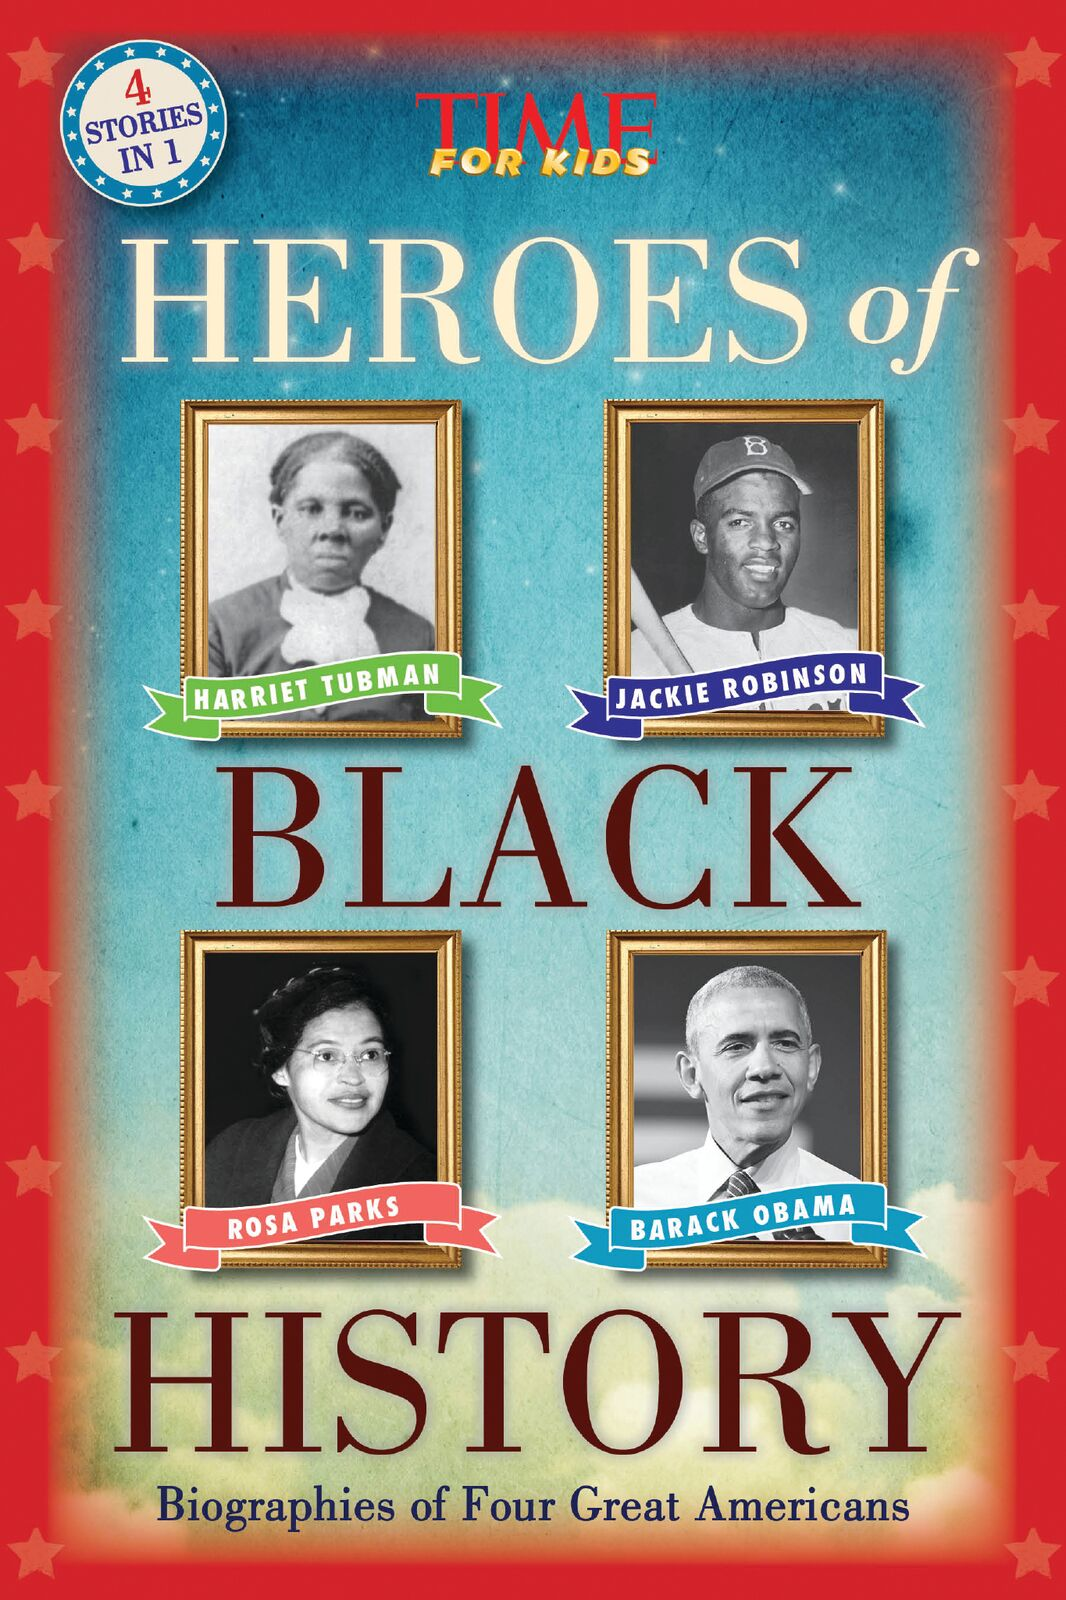 Black History Month And Jackie Robinson Heroes Of Black